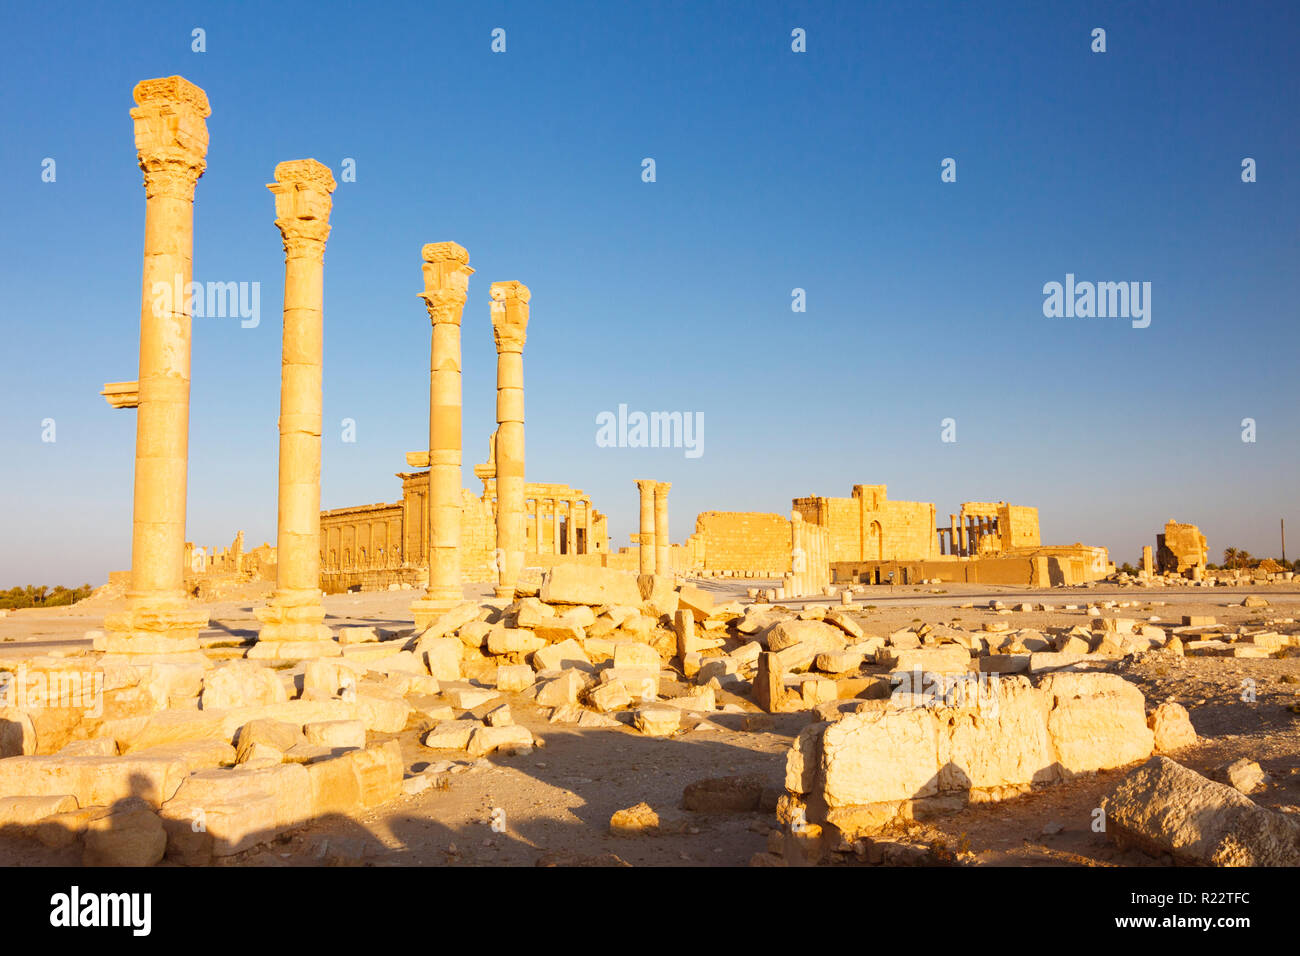 Palmyra, Homs Governorate, Syria - May 27th, 2009 :  Great Colonnade of Palmyra. Bel temple in background. - Stock Image